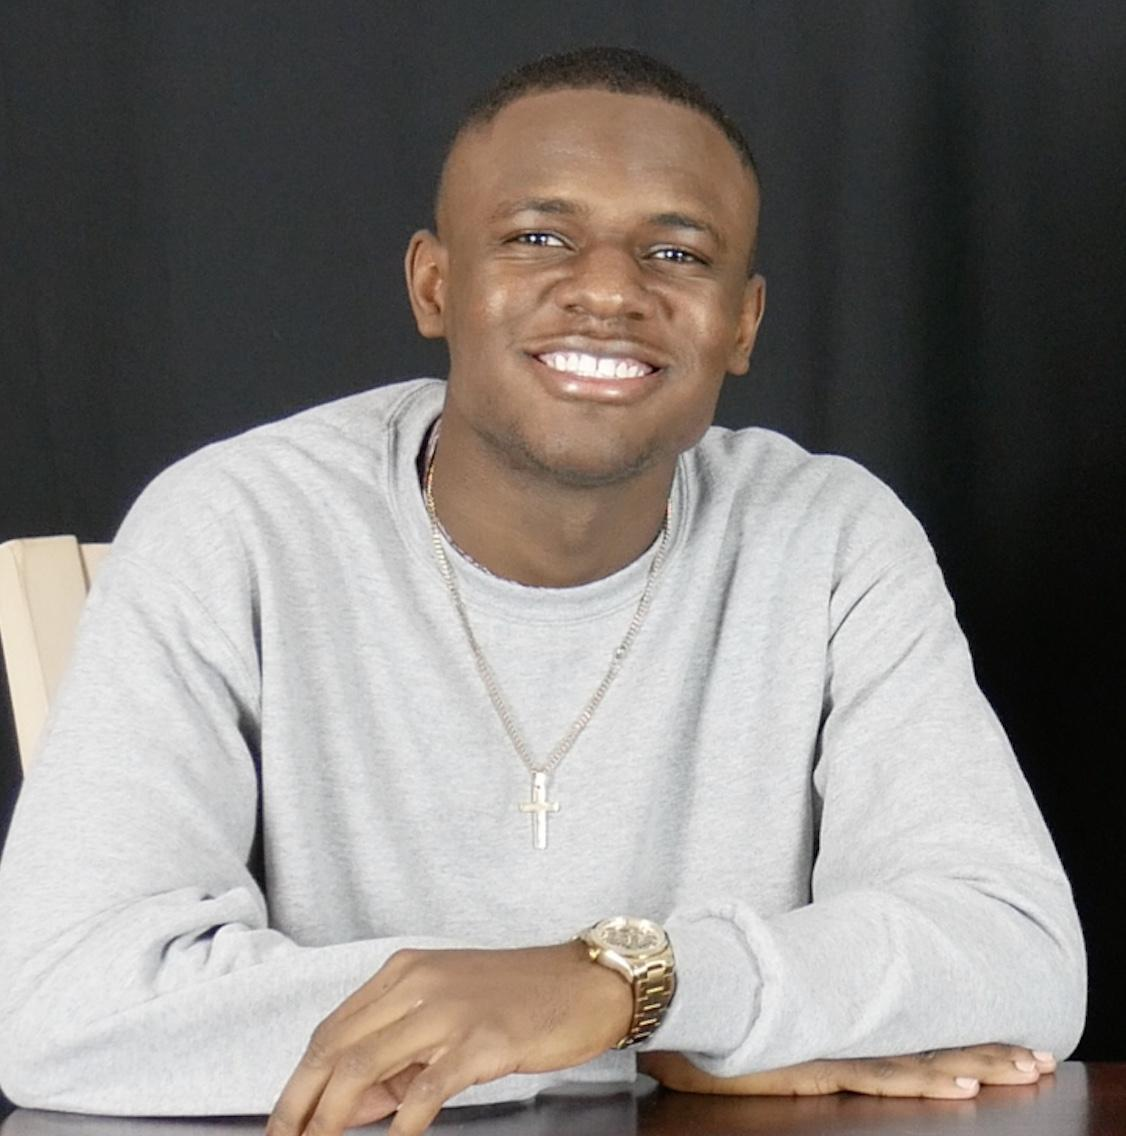 A smiling young man in a gray sweater with a gold watch and a cross necklace.